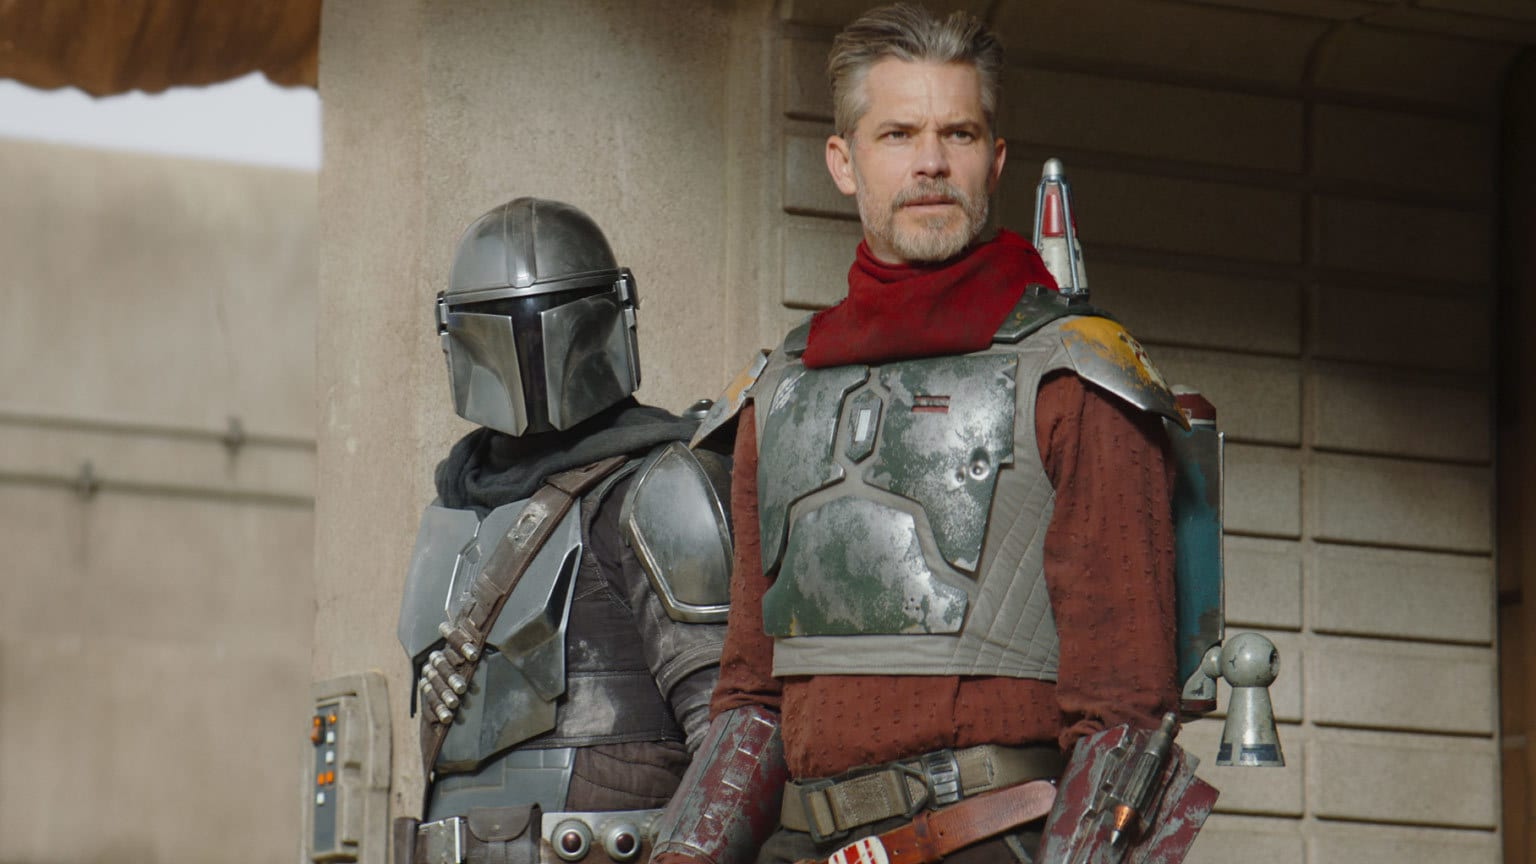 Quiz: Complete the Quote from The Mandalorian!